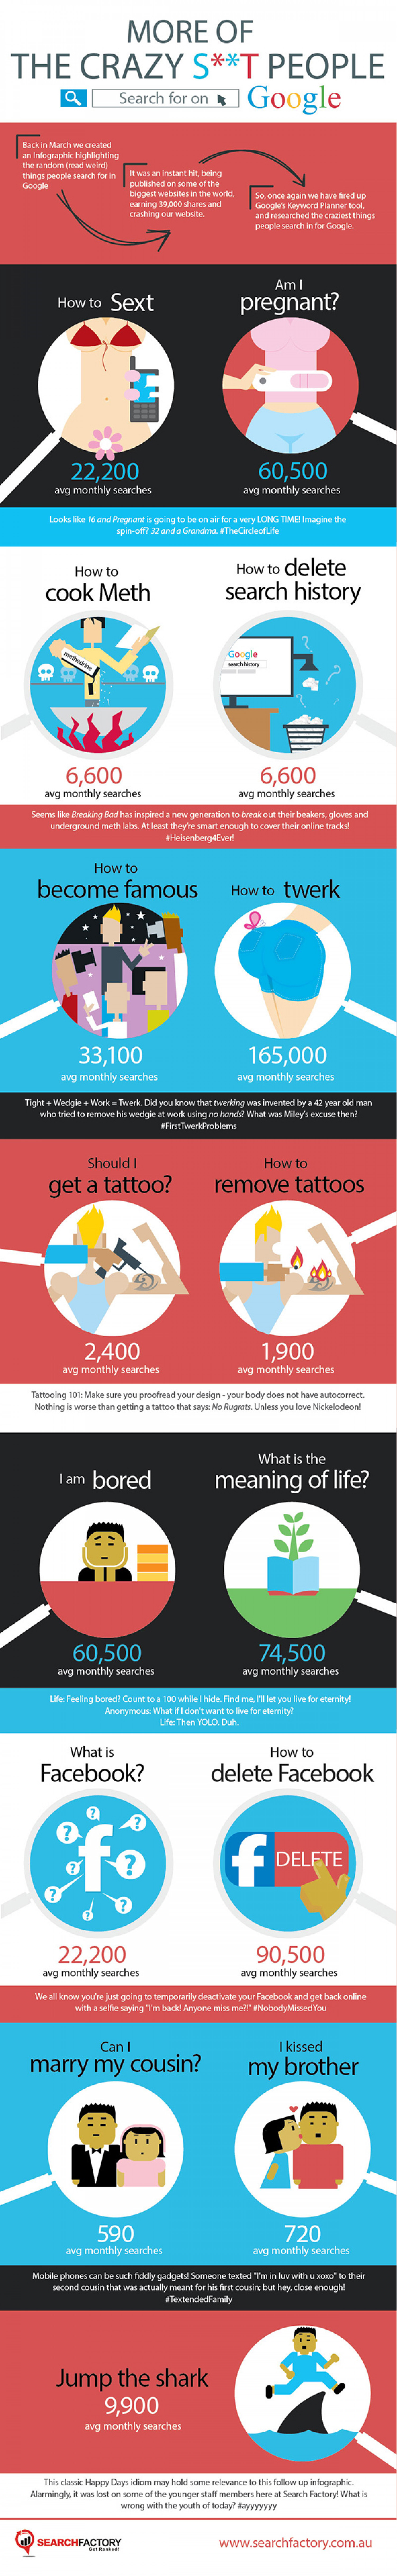 More of the Crazy Things People Search for in Google Infographic